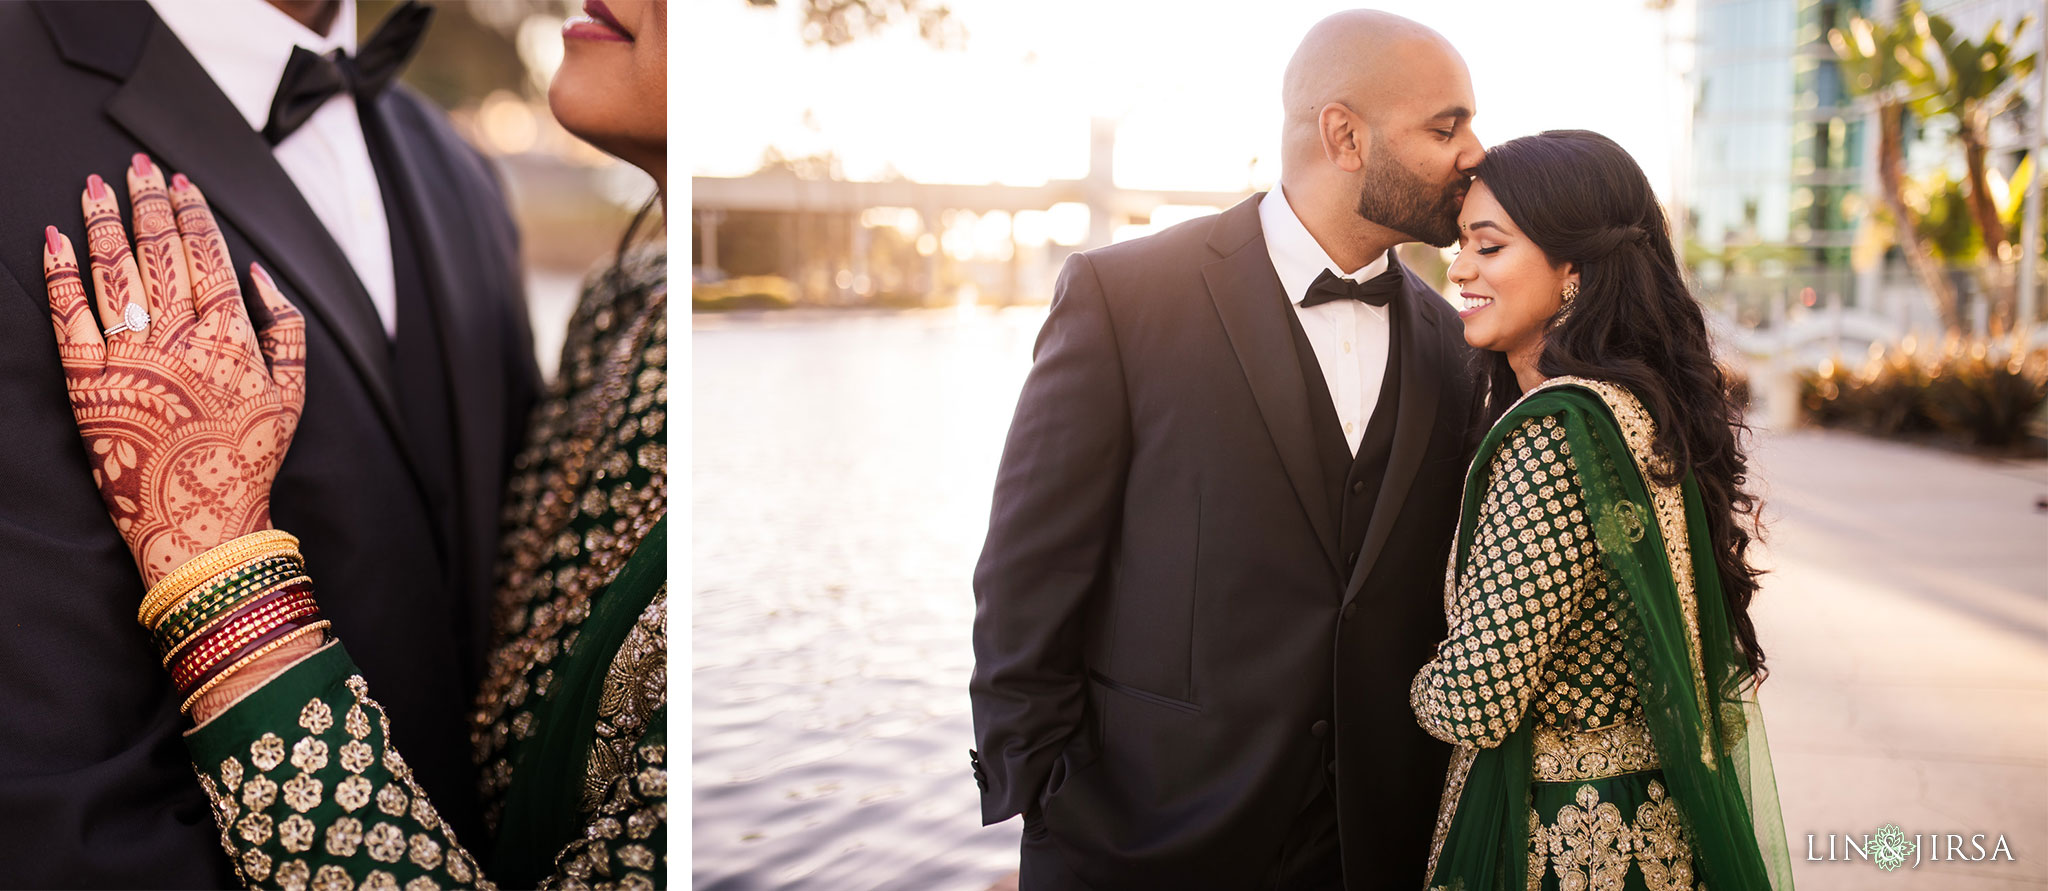 30 long beach hyatt south indian wedding photography